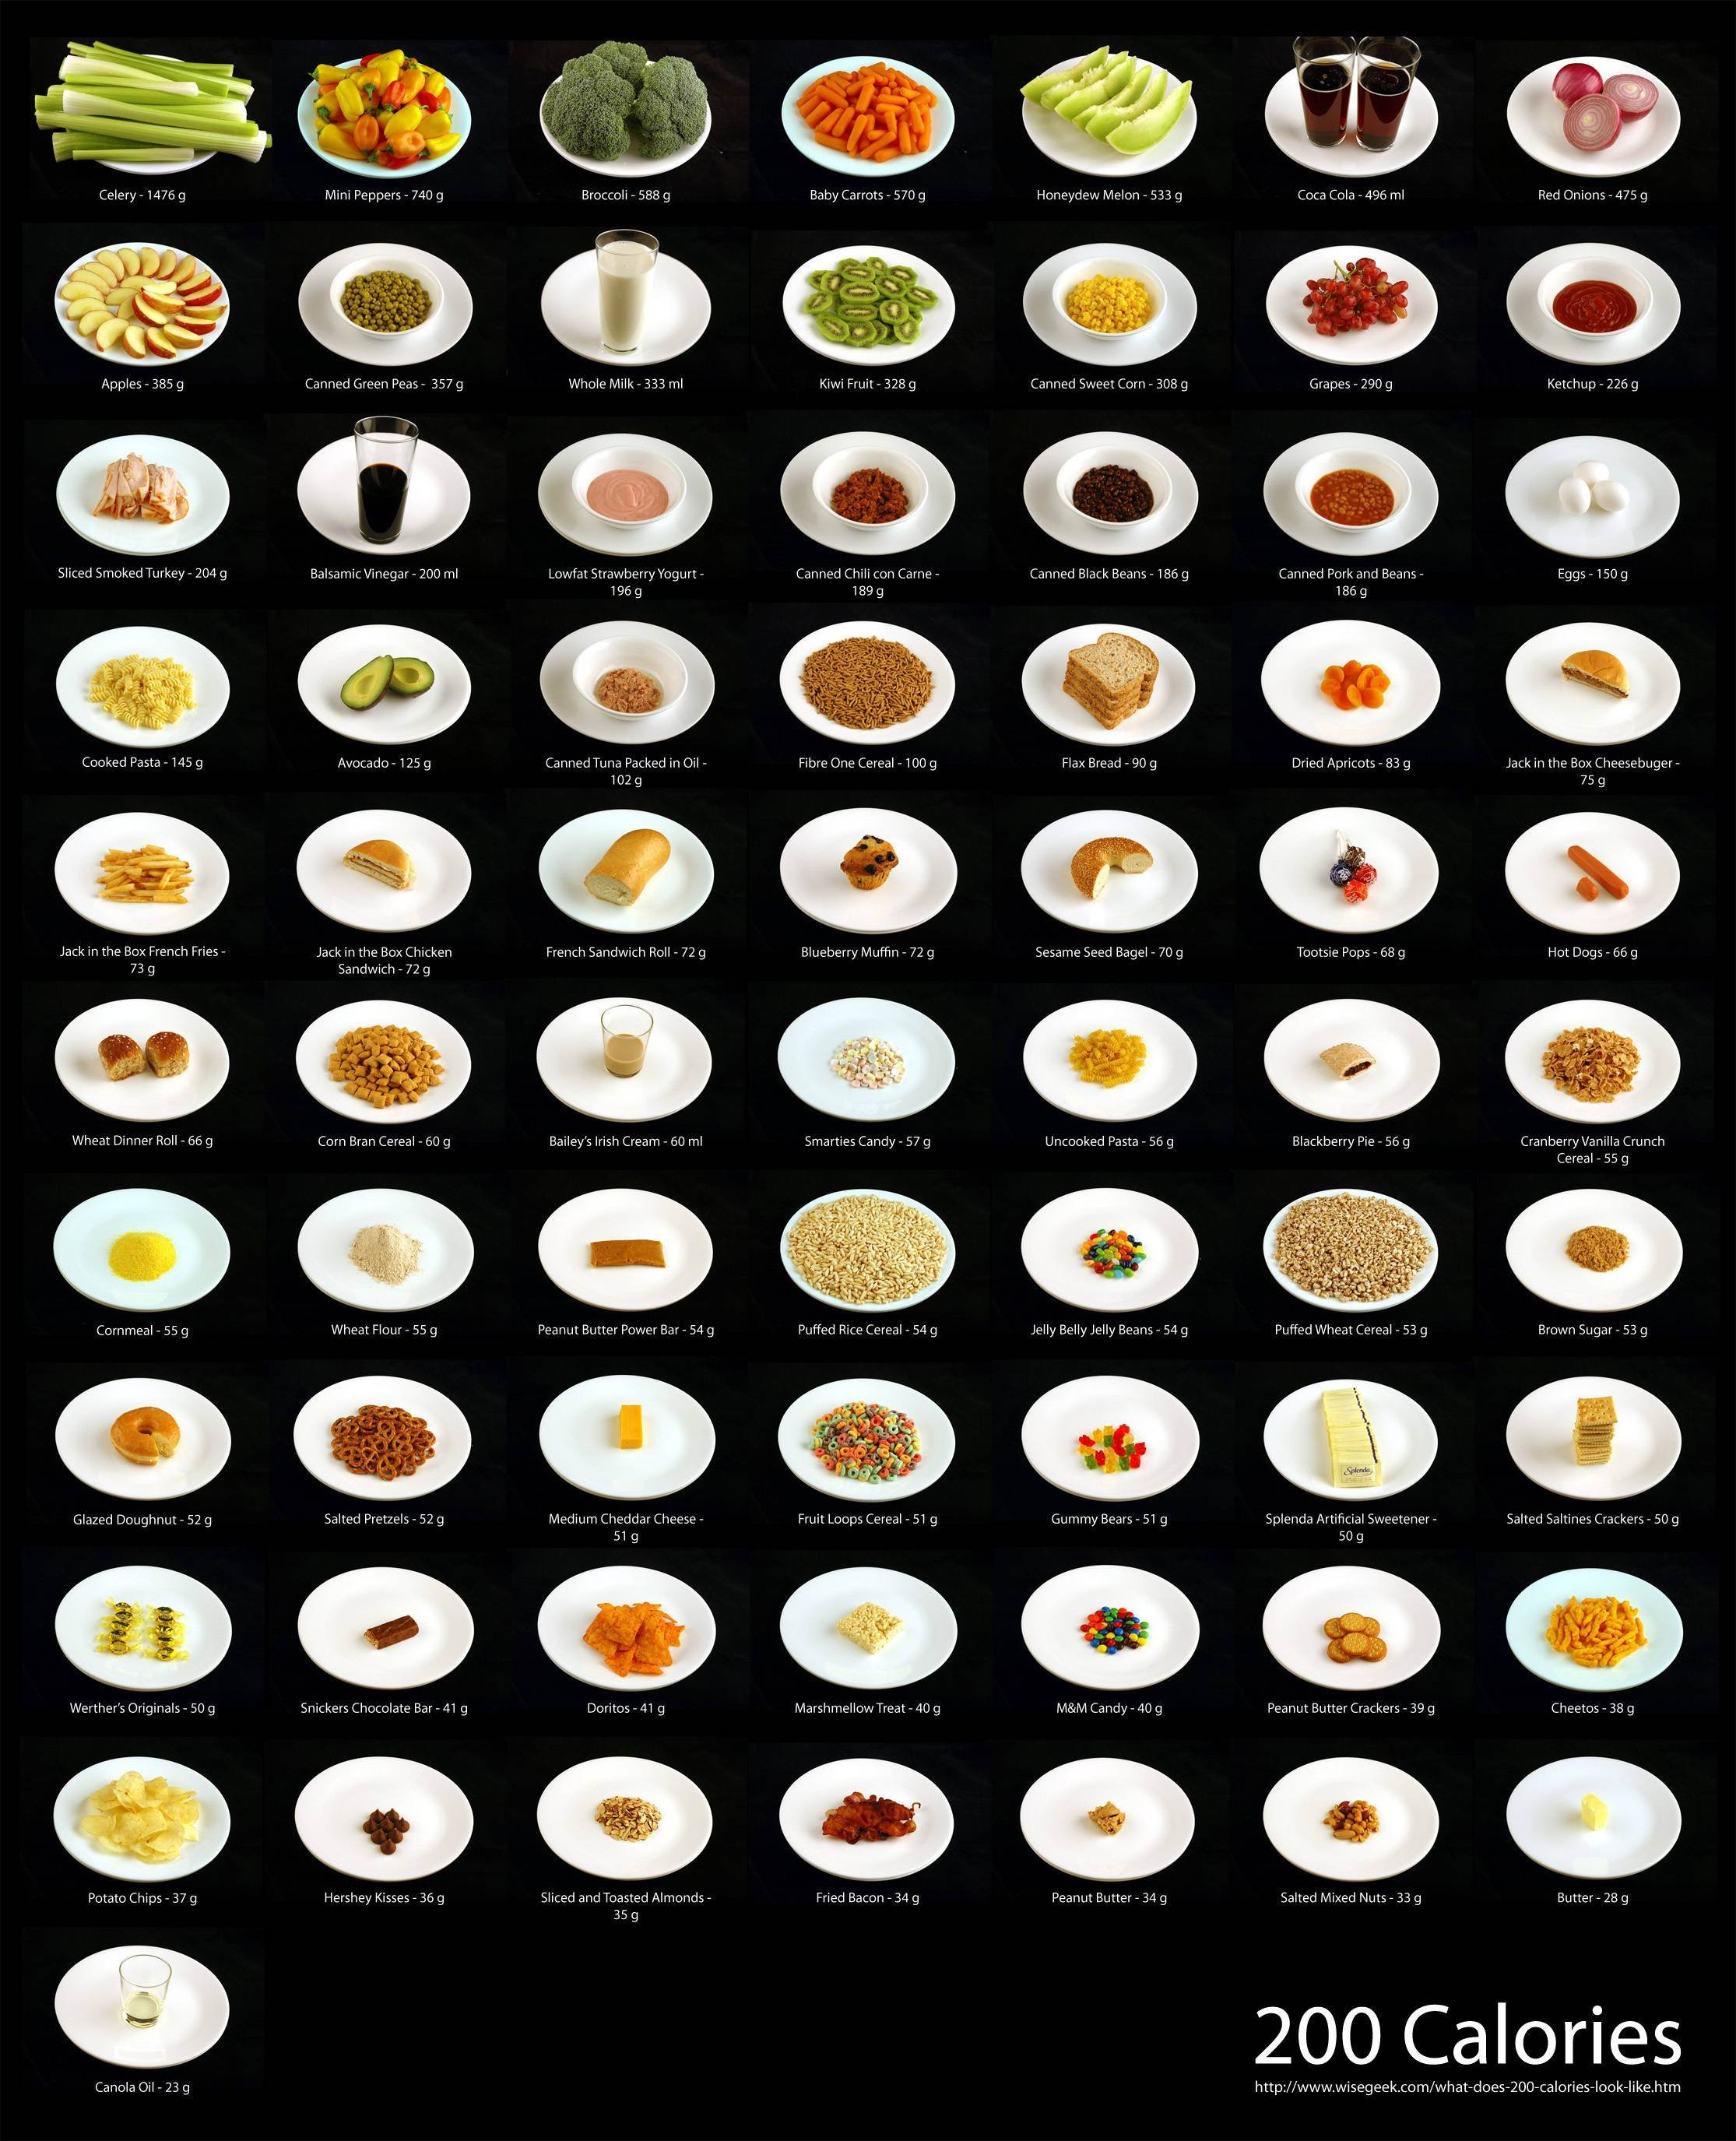 What 200 Calories Means Broken Down to Different Foods